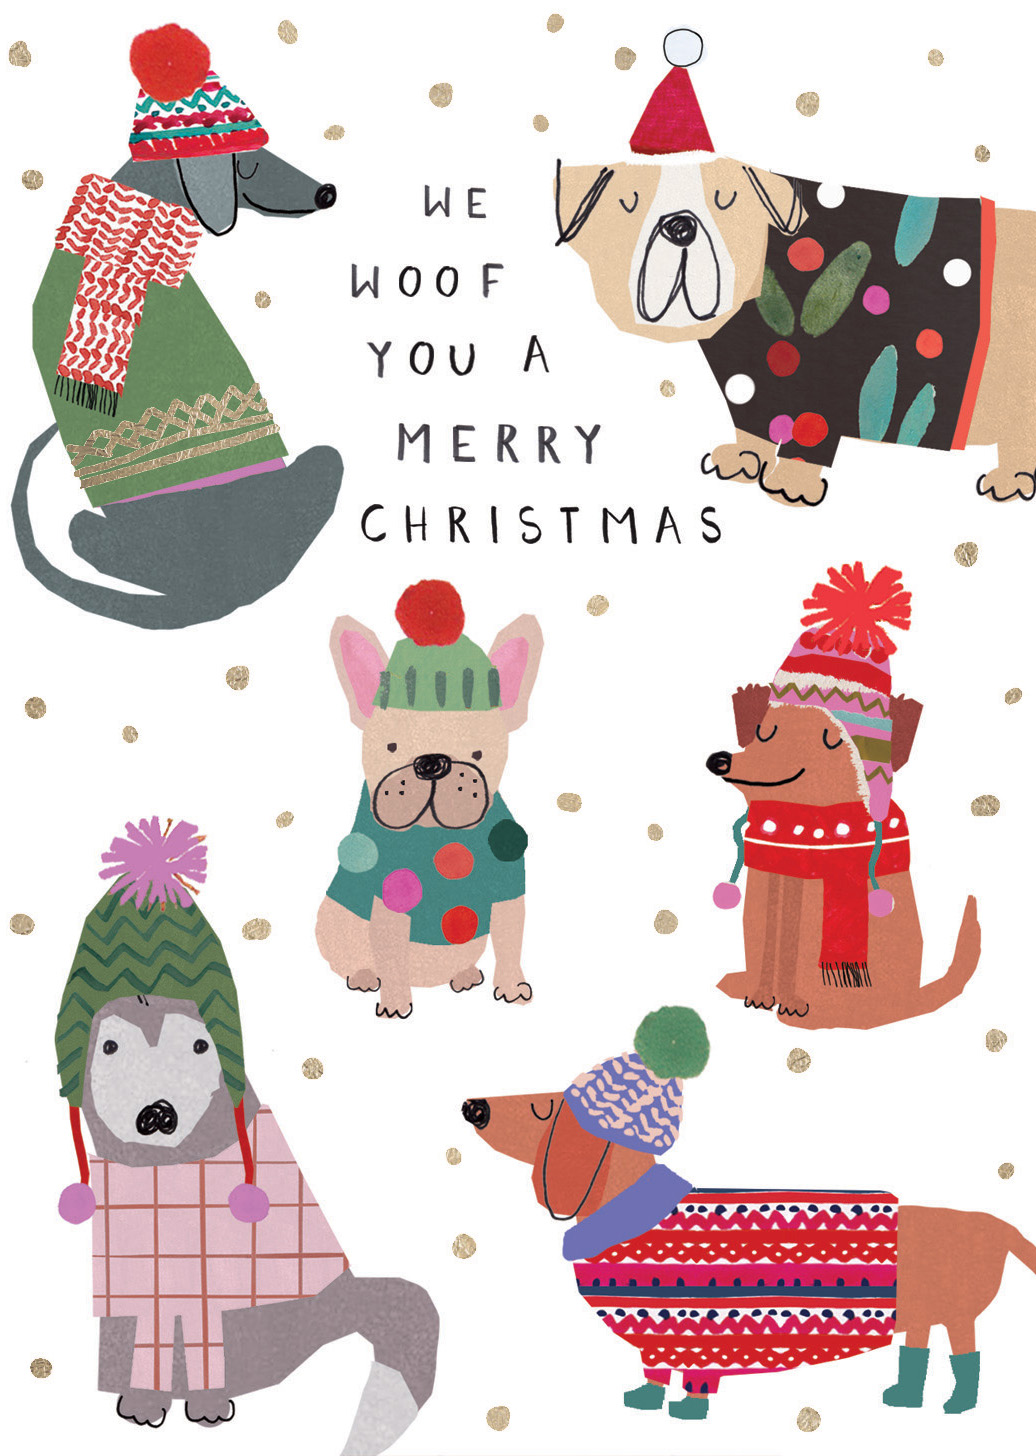 We Woof You Christmas Card